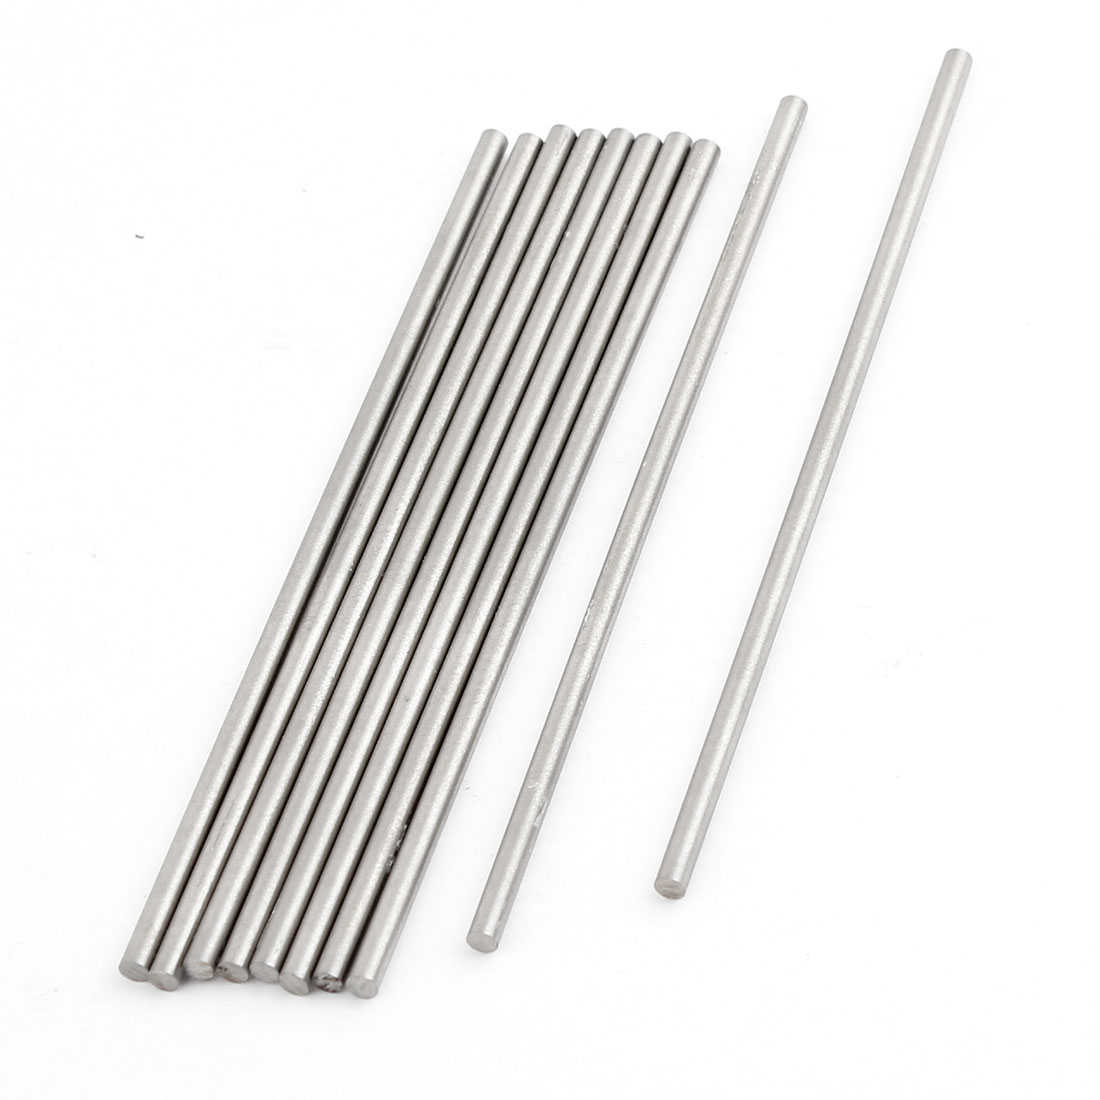 Unique Bargains 10 Pcs 2.7mmx100mm HSS High Speed Steel Turning Carbide Bars for CNC Lathe